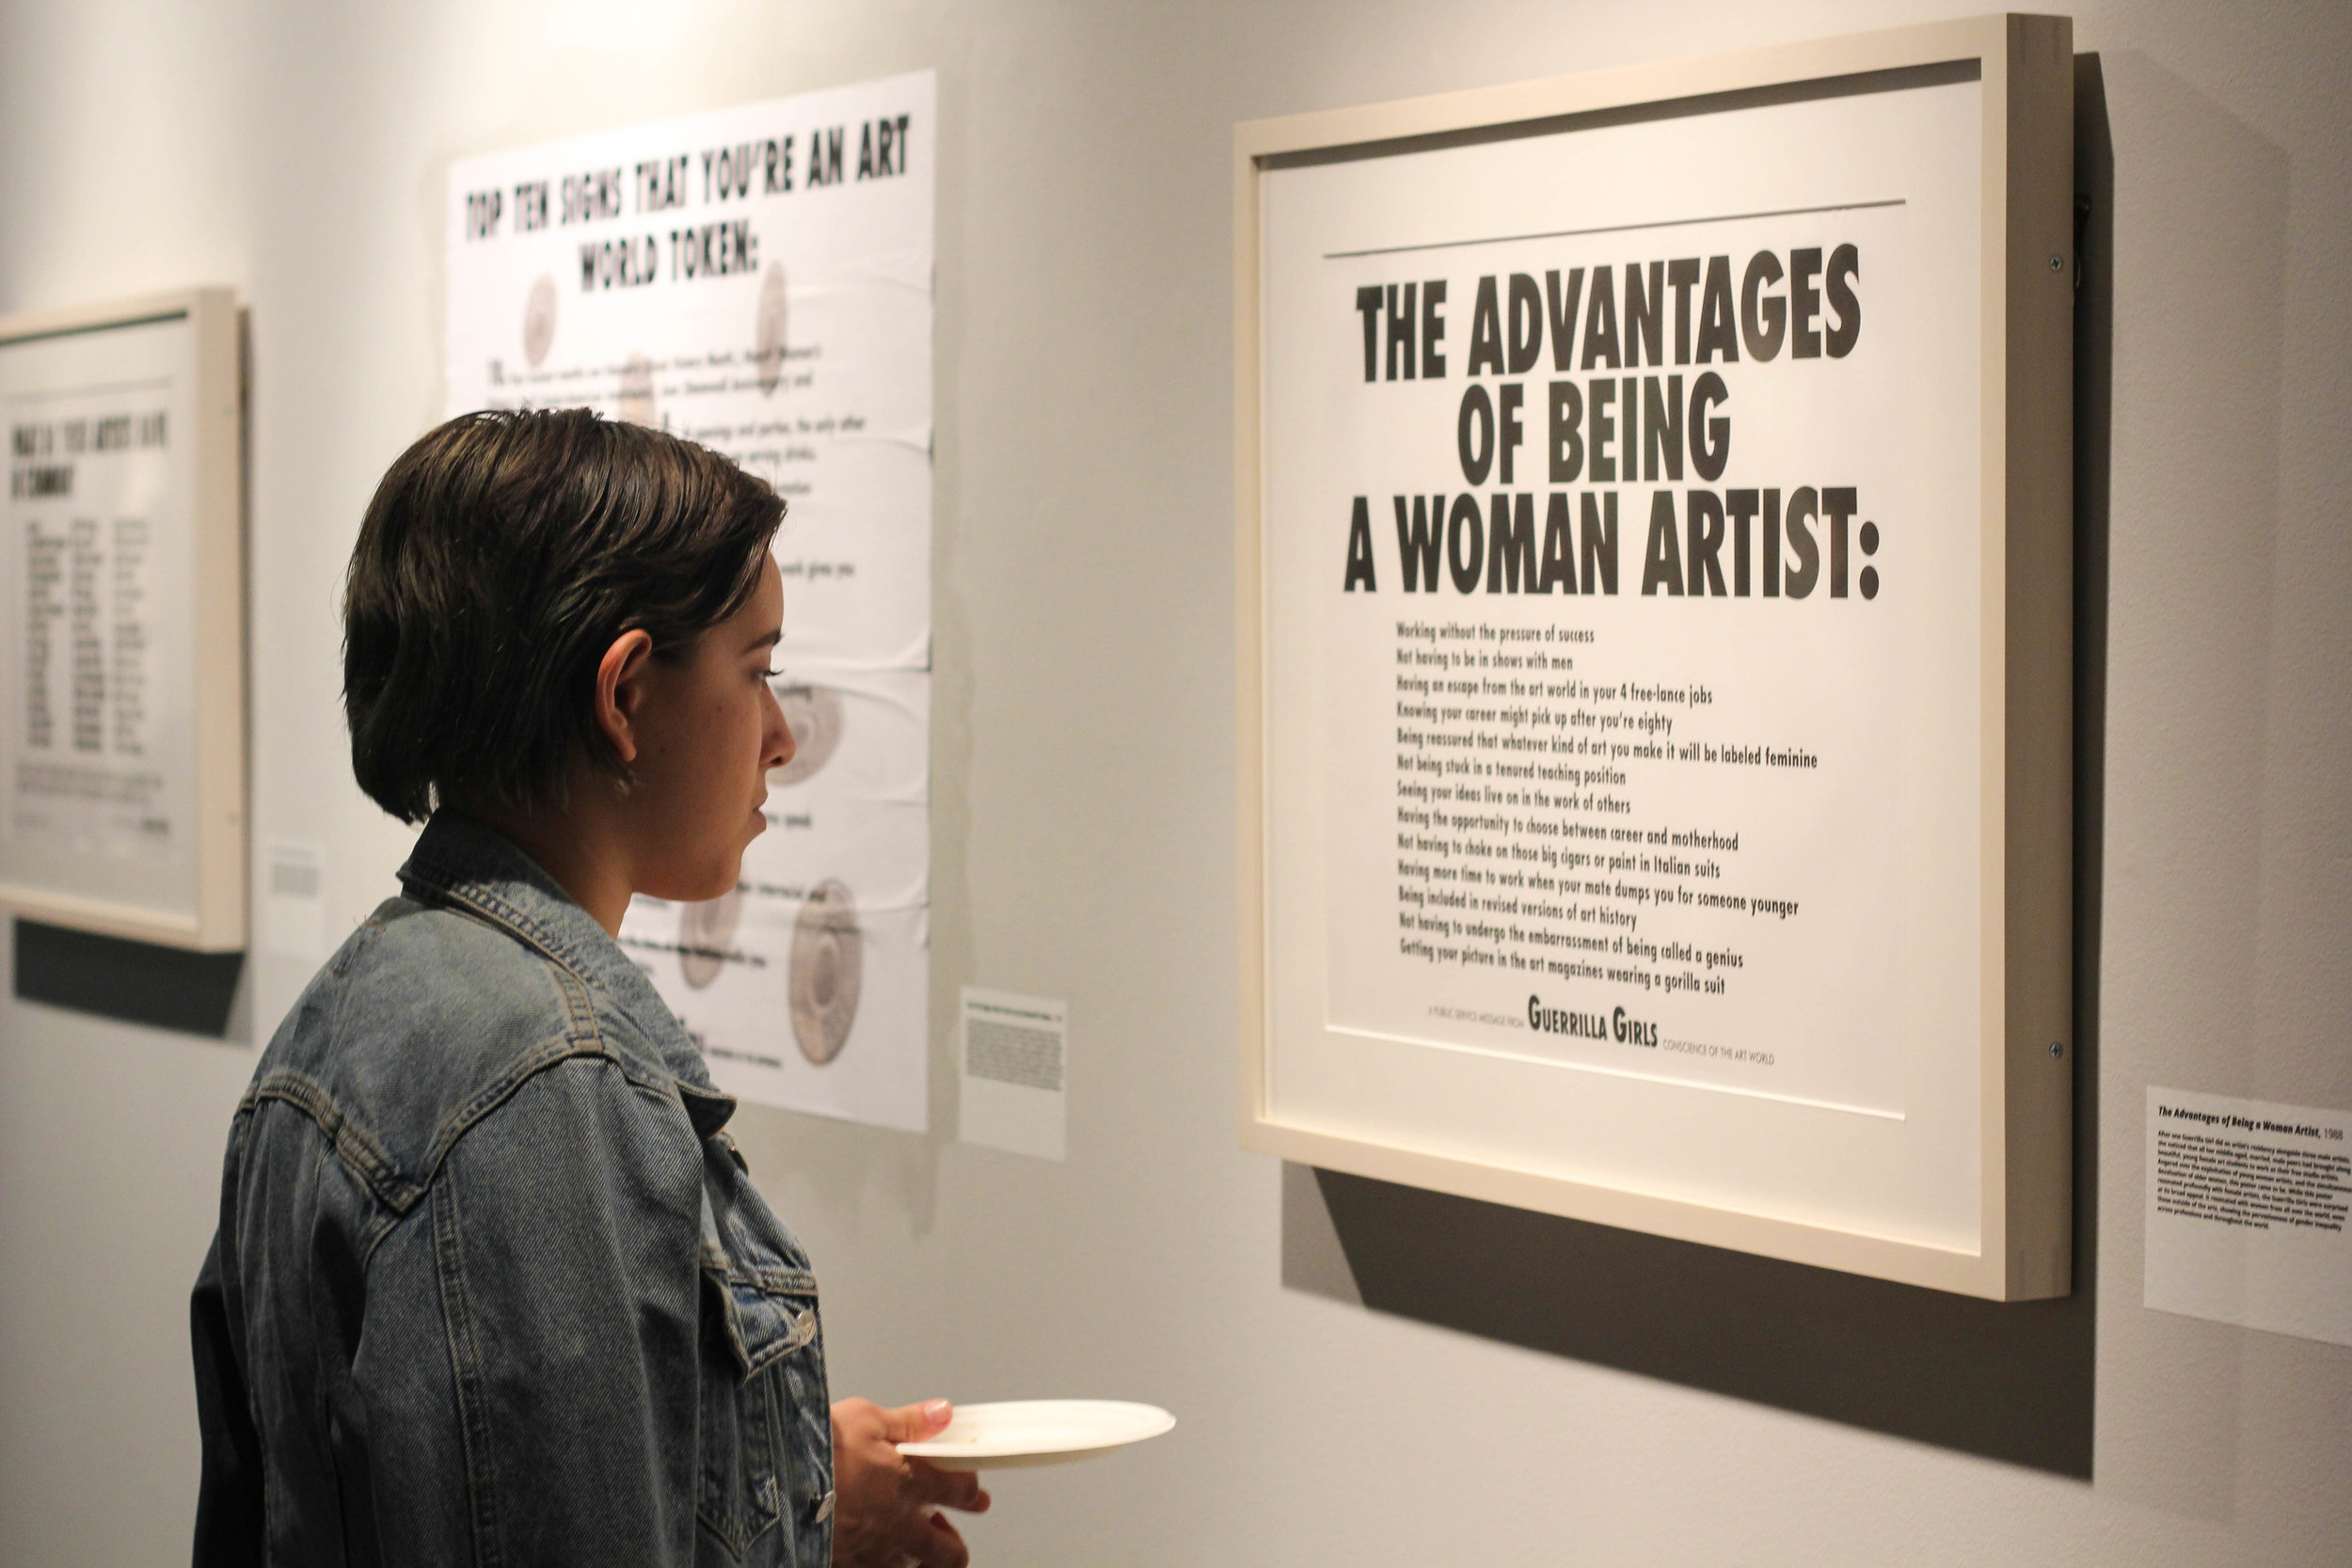 A Woman's Place is in the Gallery: Guerrilla Girls, 1985-2015. Augustana Teaching Museum of Art, 2016.